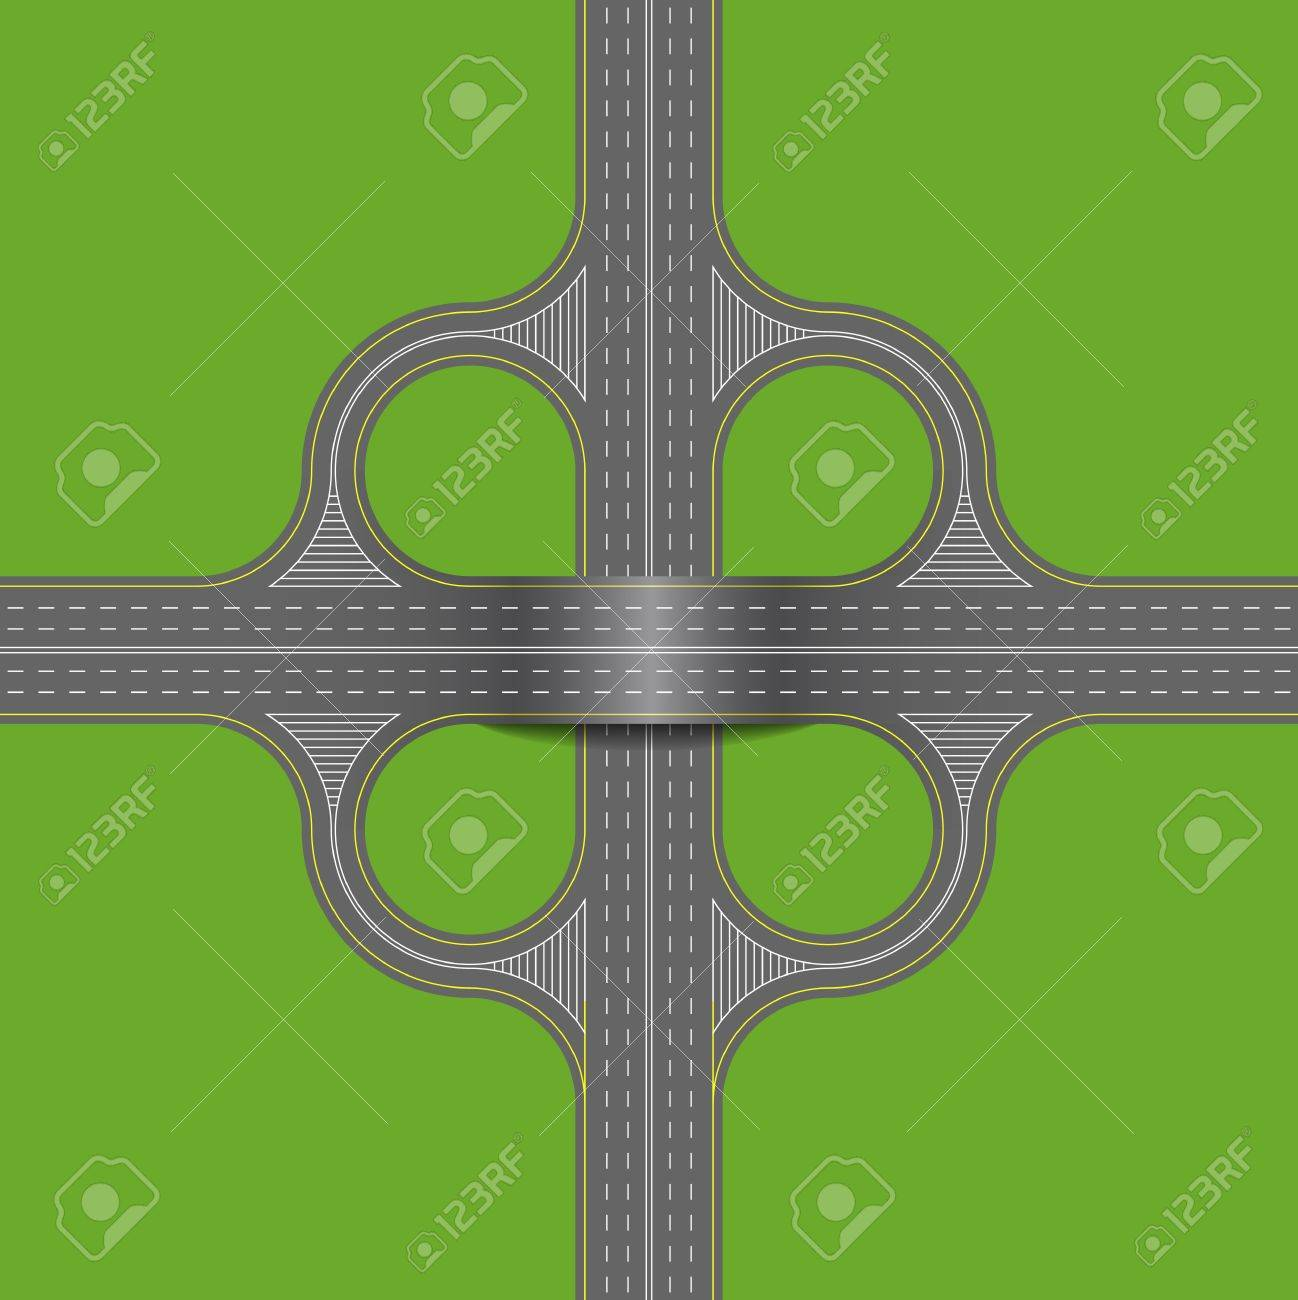 Crossroads is shown in the picture. Stock Vector - 16888706